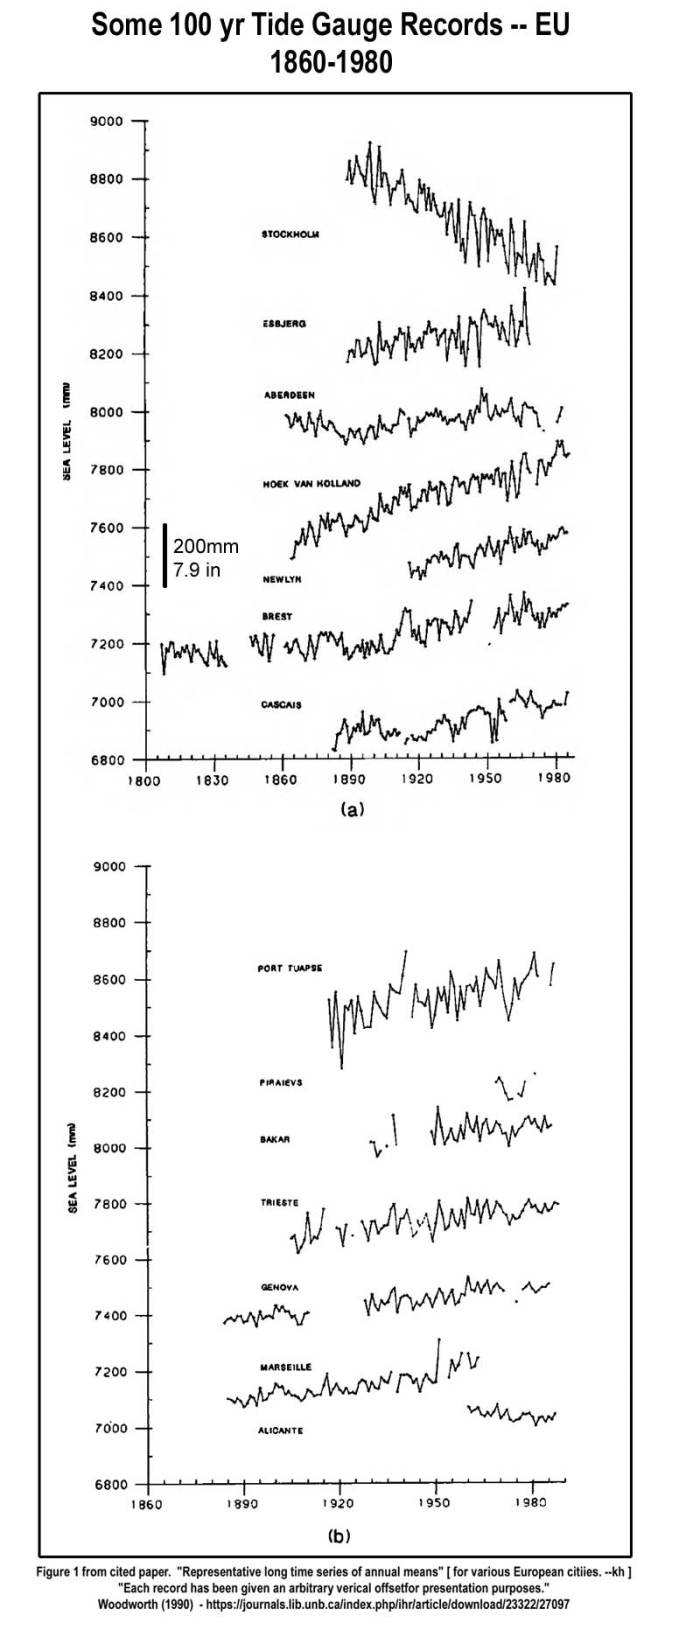 Historical European Sea Level Records | Watts Up With That?